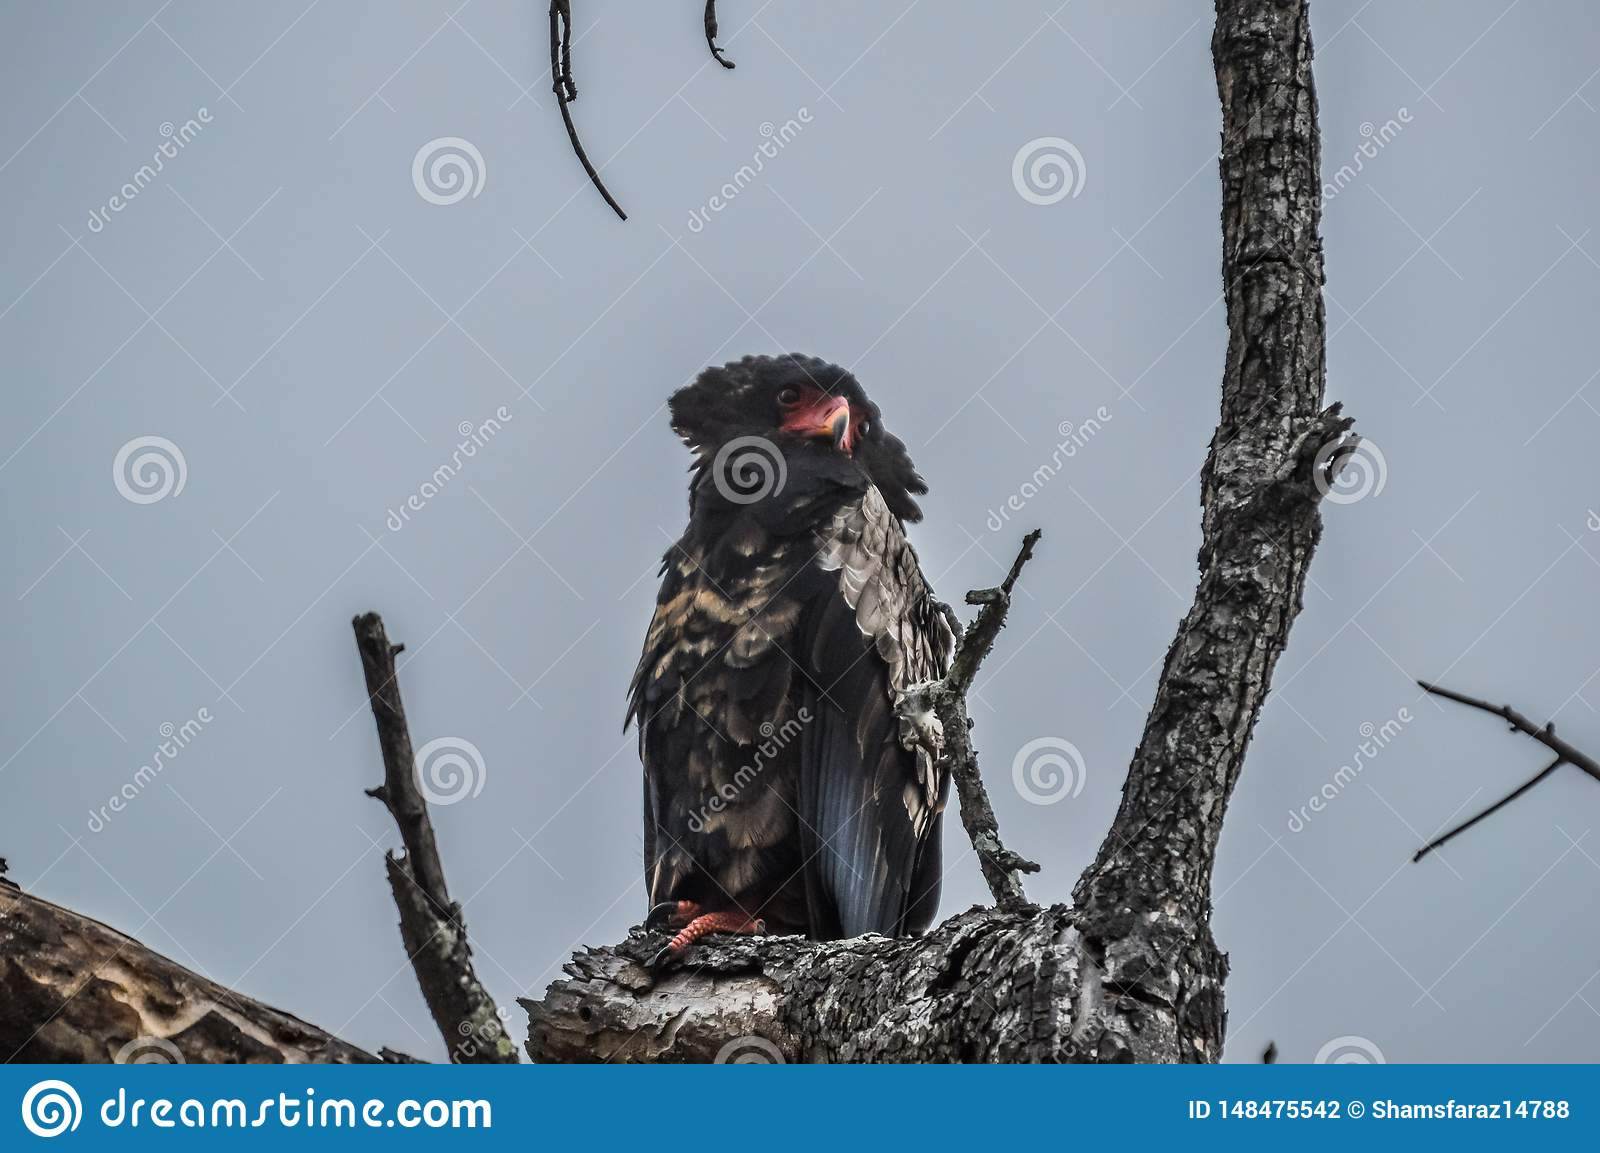 A big male Bateleur eagle perched on a tree branch during safari in South Africa